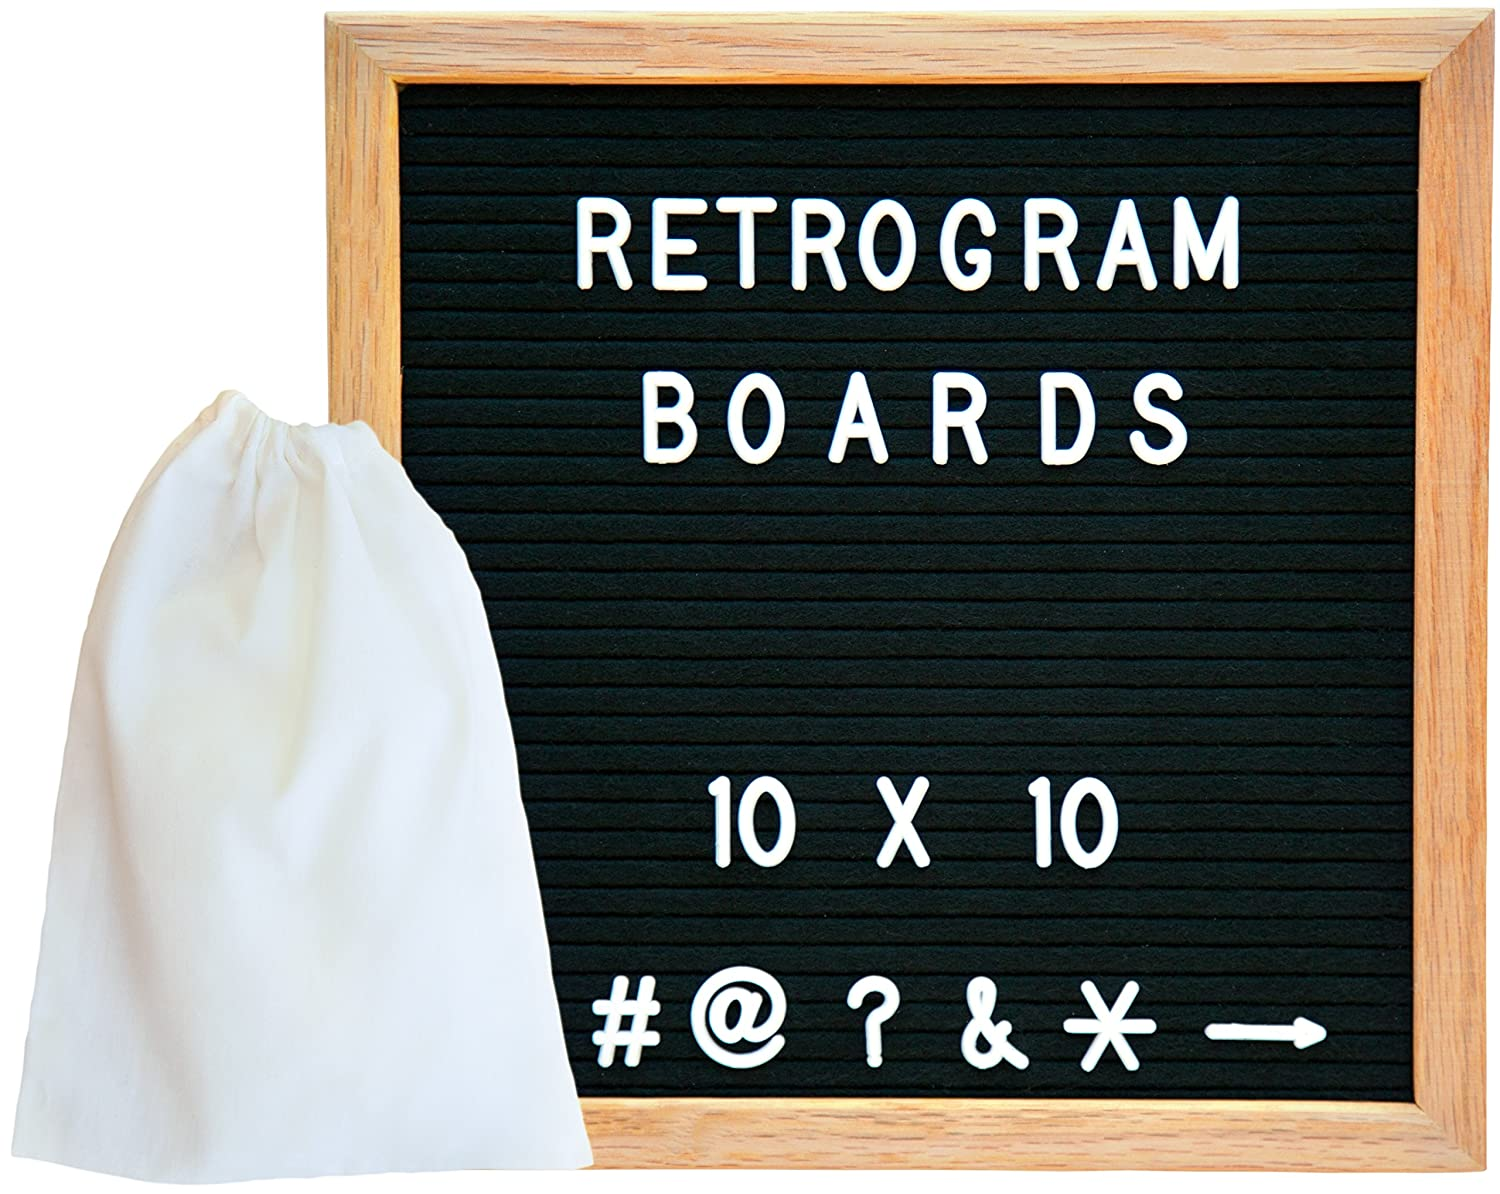 Vintage Felt Changeable Letter Board: 10x10 Inches Oak Wood Frame with 290 ¾ Inch Helvetica White Letters, Numbers and Punctuation, Mounting Hook, High Quality Construction, Plus Free Letter Bag Retrogram Boards RG10X10BLK-34WL